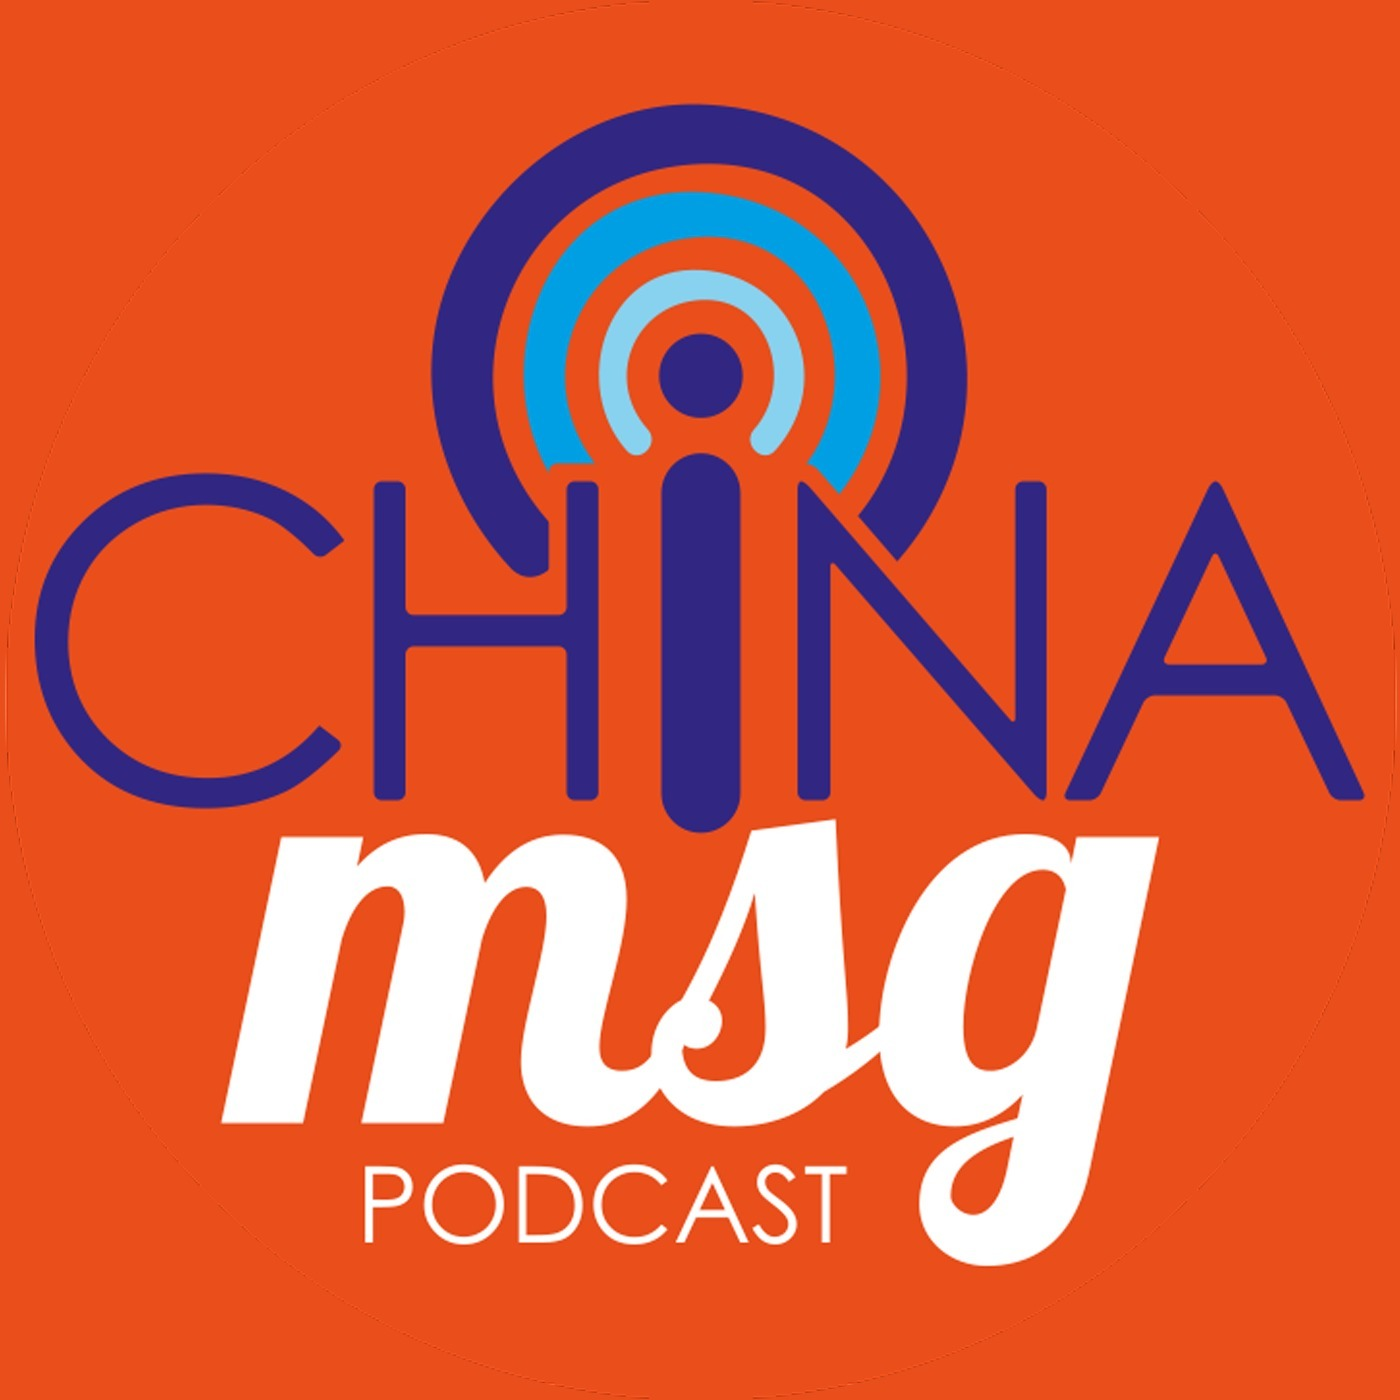 Episode 2: Thai food Shanghai & (too) long in China!